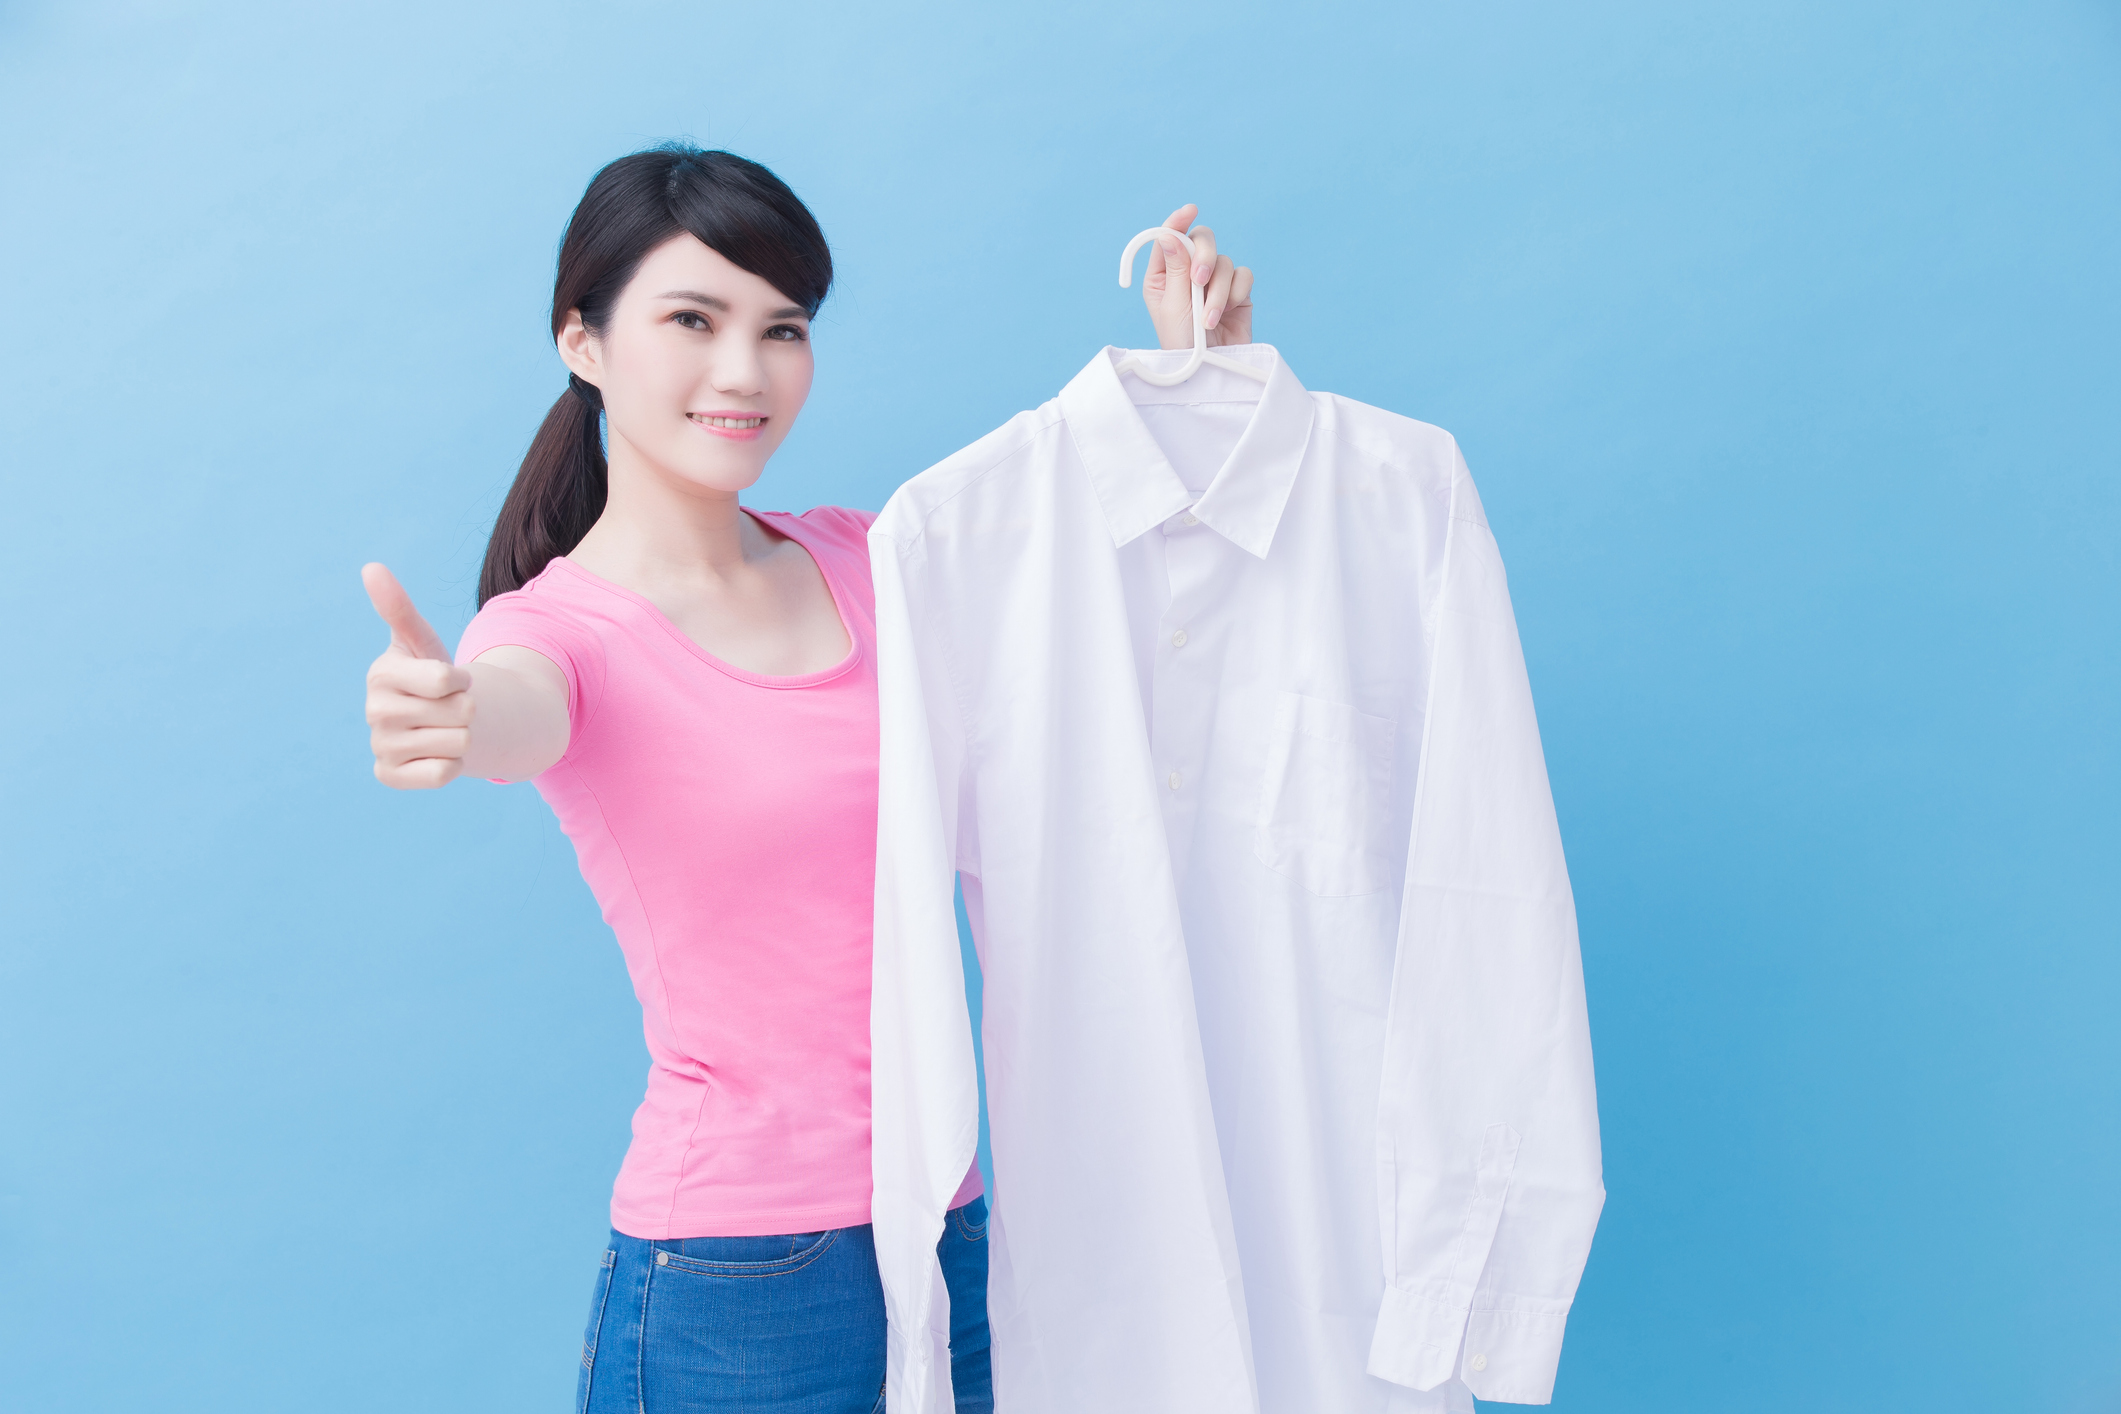 Thumbs Up from Female Laundry Customer-9